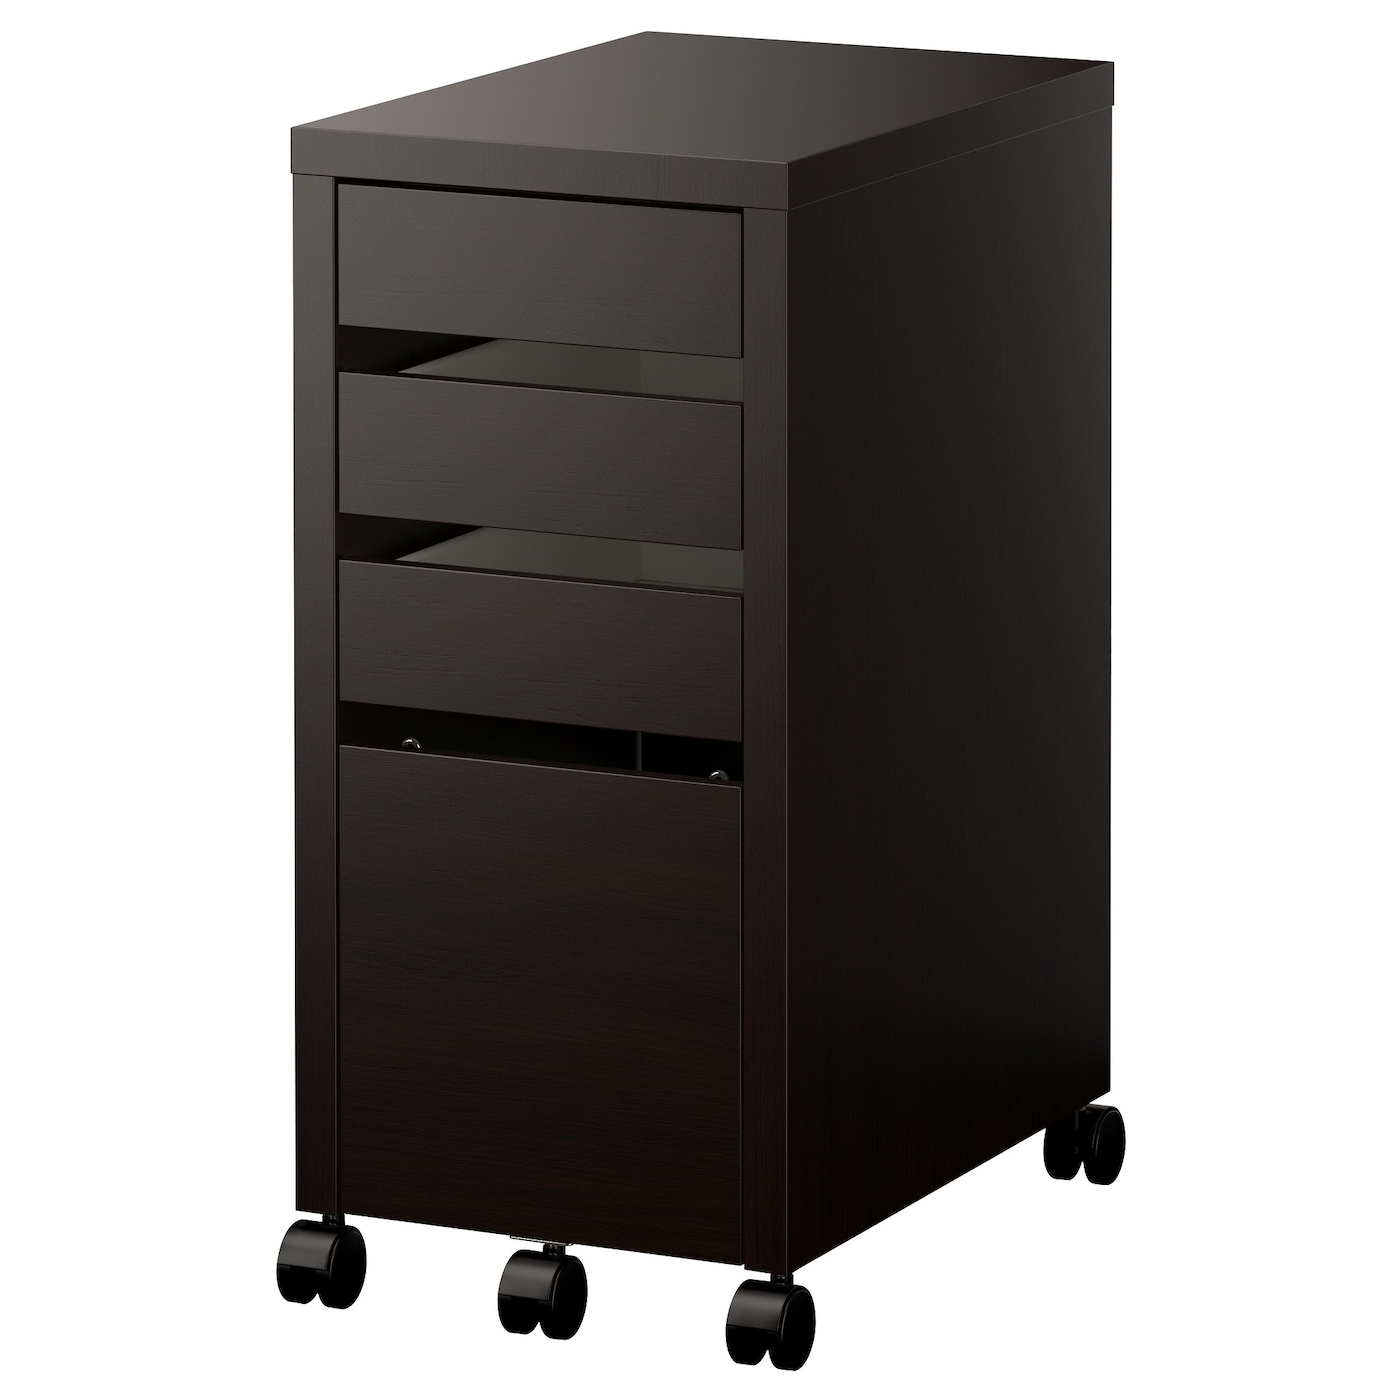 IKEA MICKE drawer unit with drop-file storage